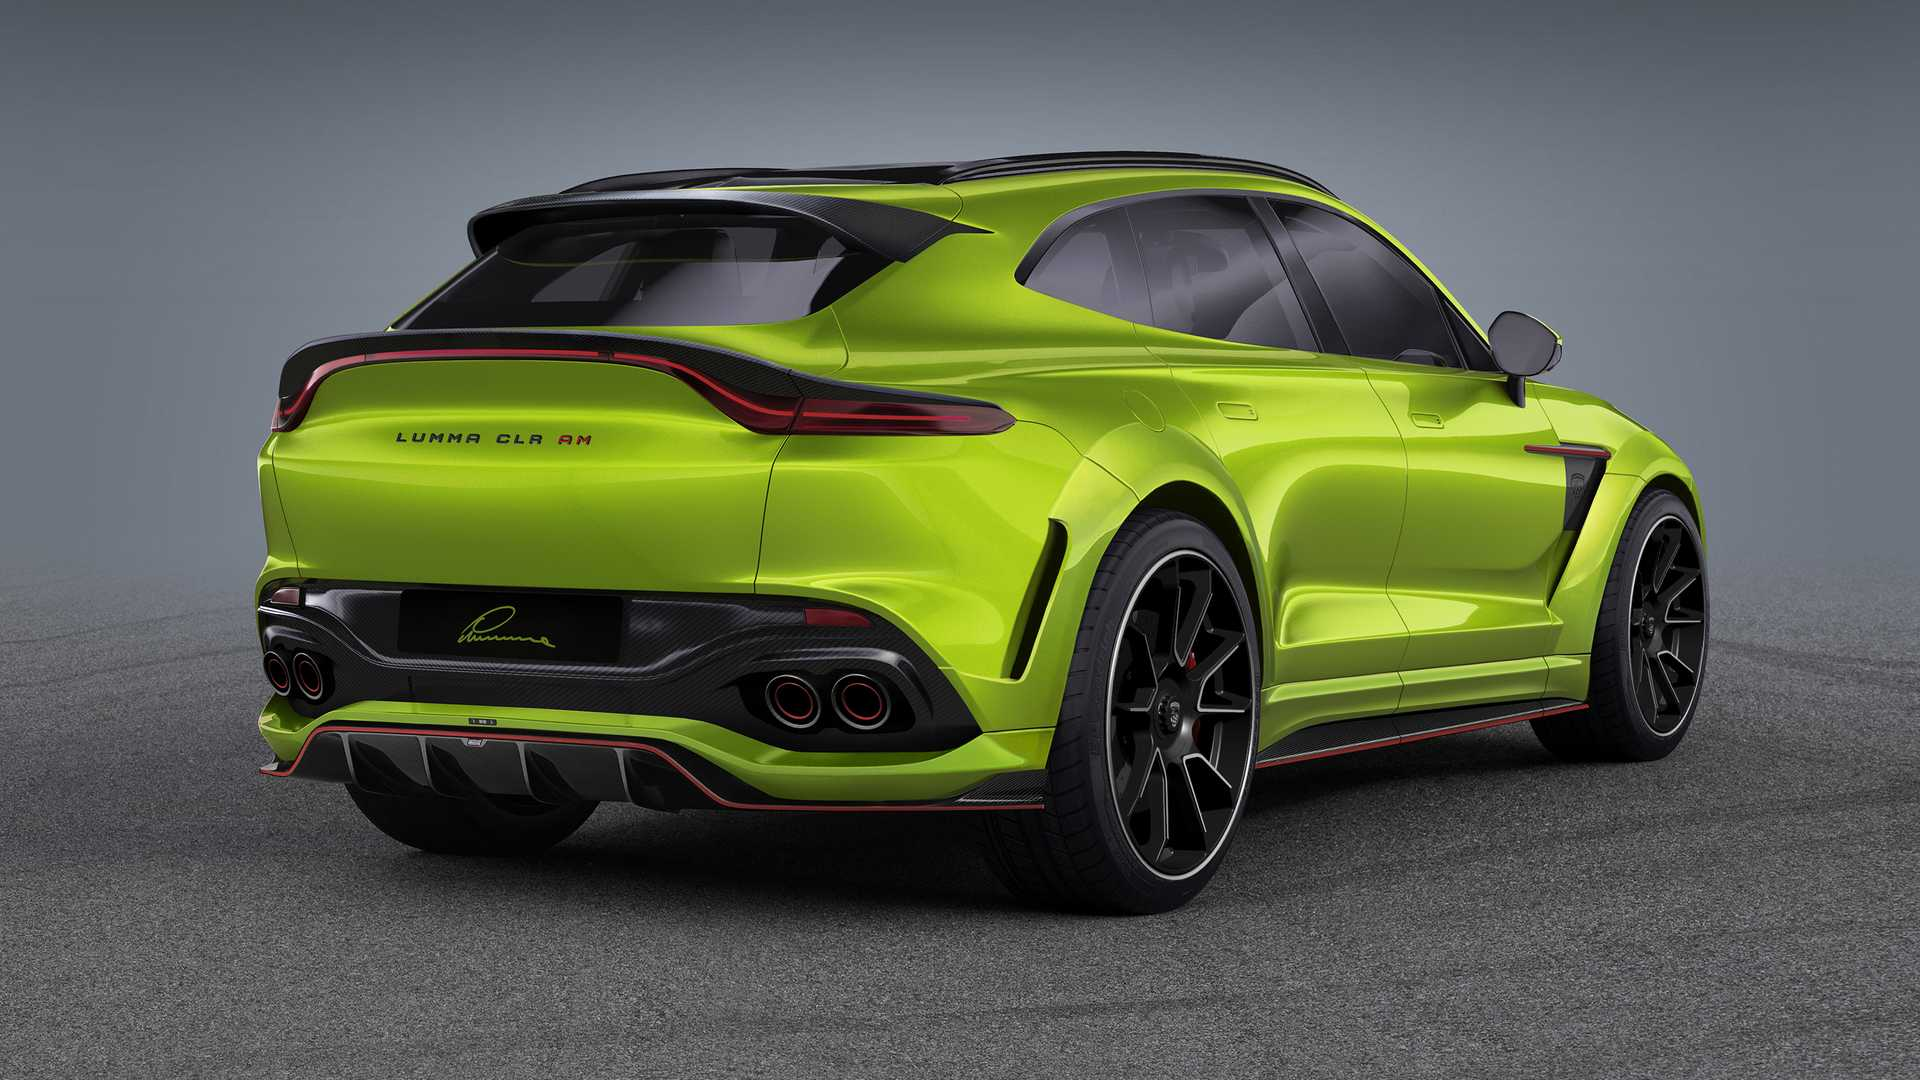 aston-martin-dbx-by-lumma-design-5